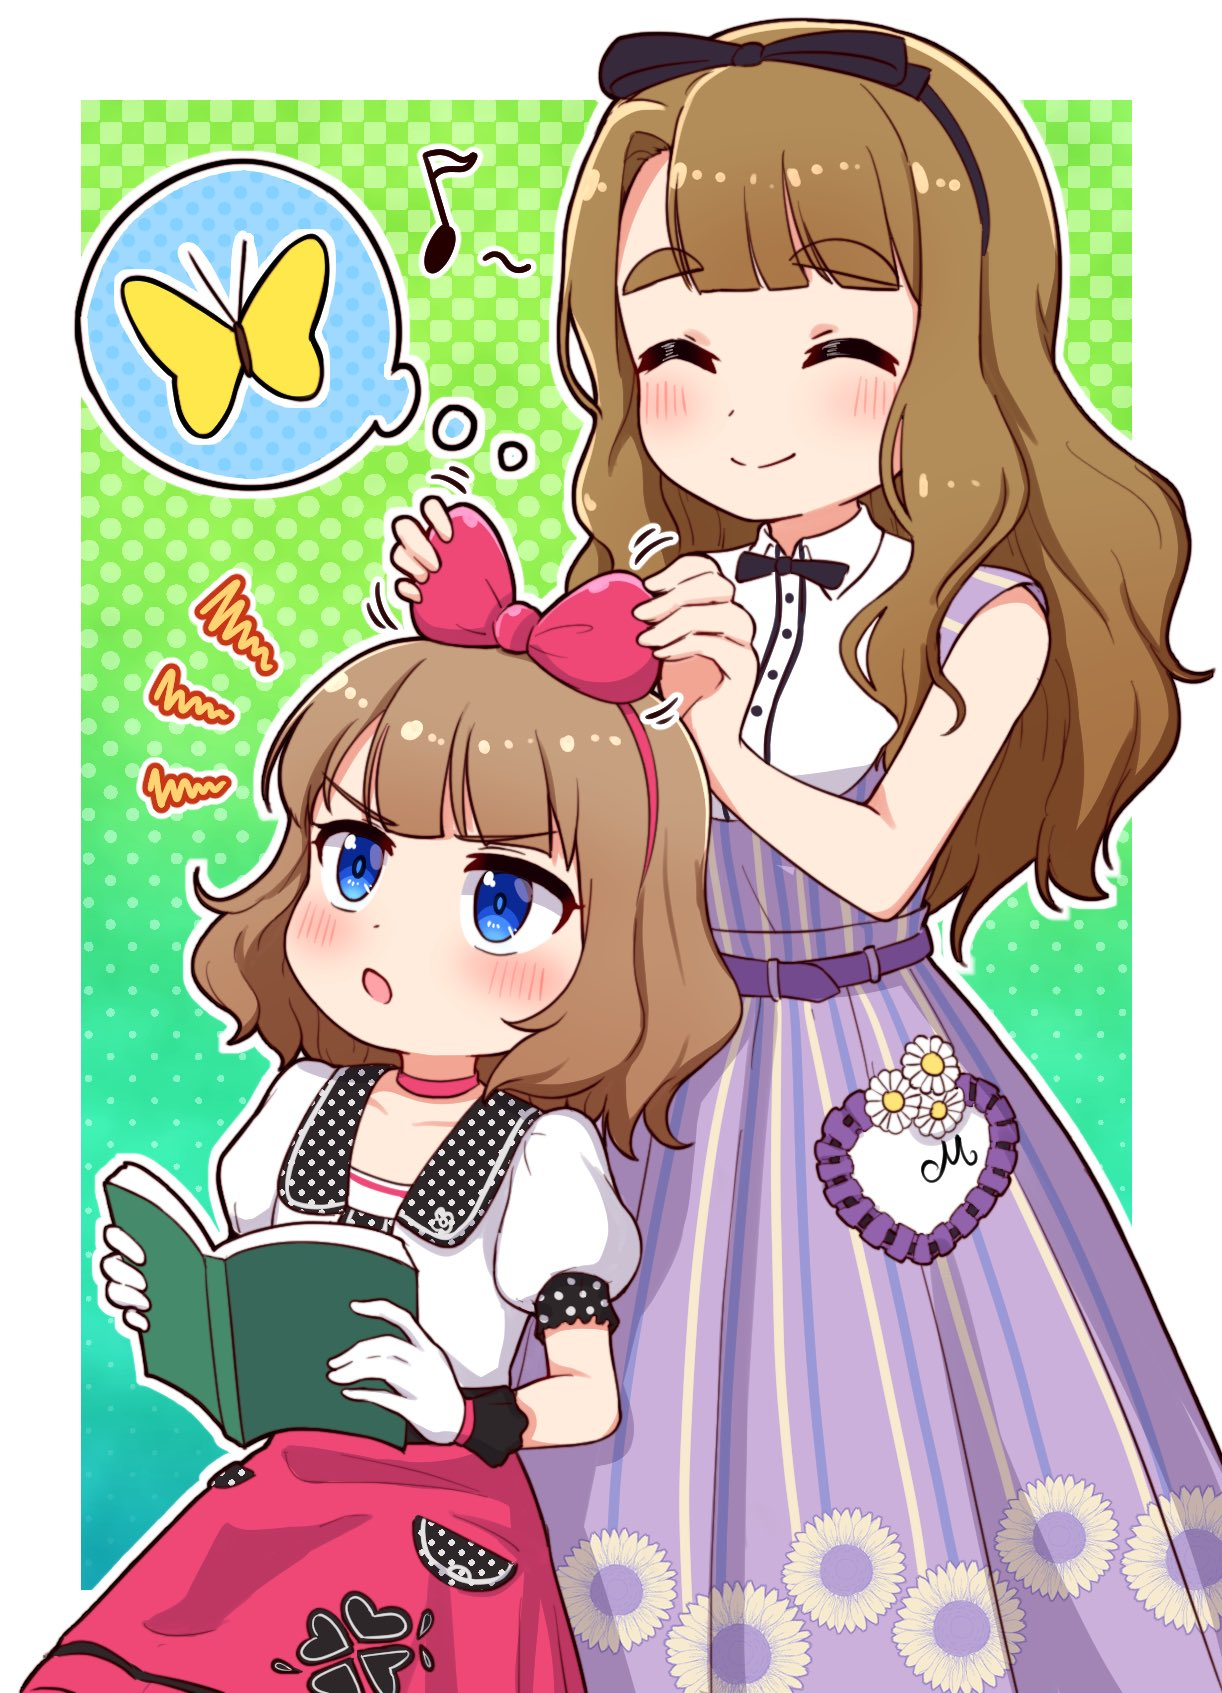 2girls :o ^_^ bangs black_bow black_hairband blue_eyes blush book bow brown_hair bug butterfly closed_eyes closed_mouth collared_shirt commentary_request dress eighth_note eyebrows_visible_through_hair flower gloves green_background hair_bow hairband halftone halftone_background heart highres holding holding_book idolmaster idolmaster_million_live! idolmaster_million_live!_theater_days insect long_hair miyao_miya multiple_girls musical_note open_book open_mouth outline pleated_dress polka_dot puffy_short_sleeves puffy_sleeves purple_dress red_bow red_hairband red_skirt shirt short_sleeves skirt smile spoken_animal suou_momoko takiki thick_eyebrows v-shaped_eyebrows very_long_hair white_flower white_gloves white_outline white_shirt